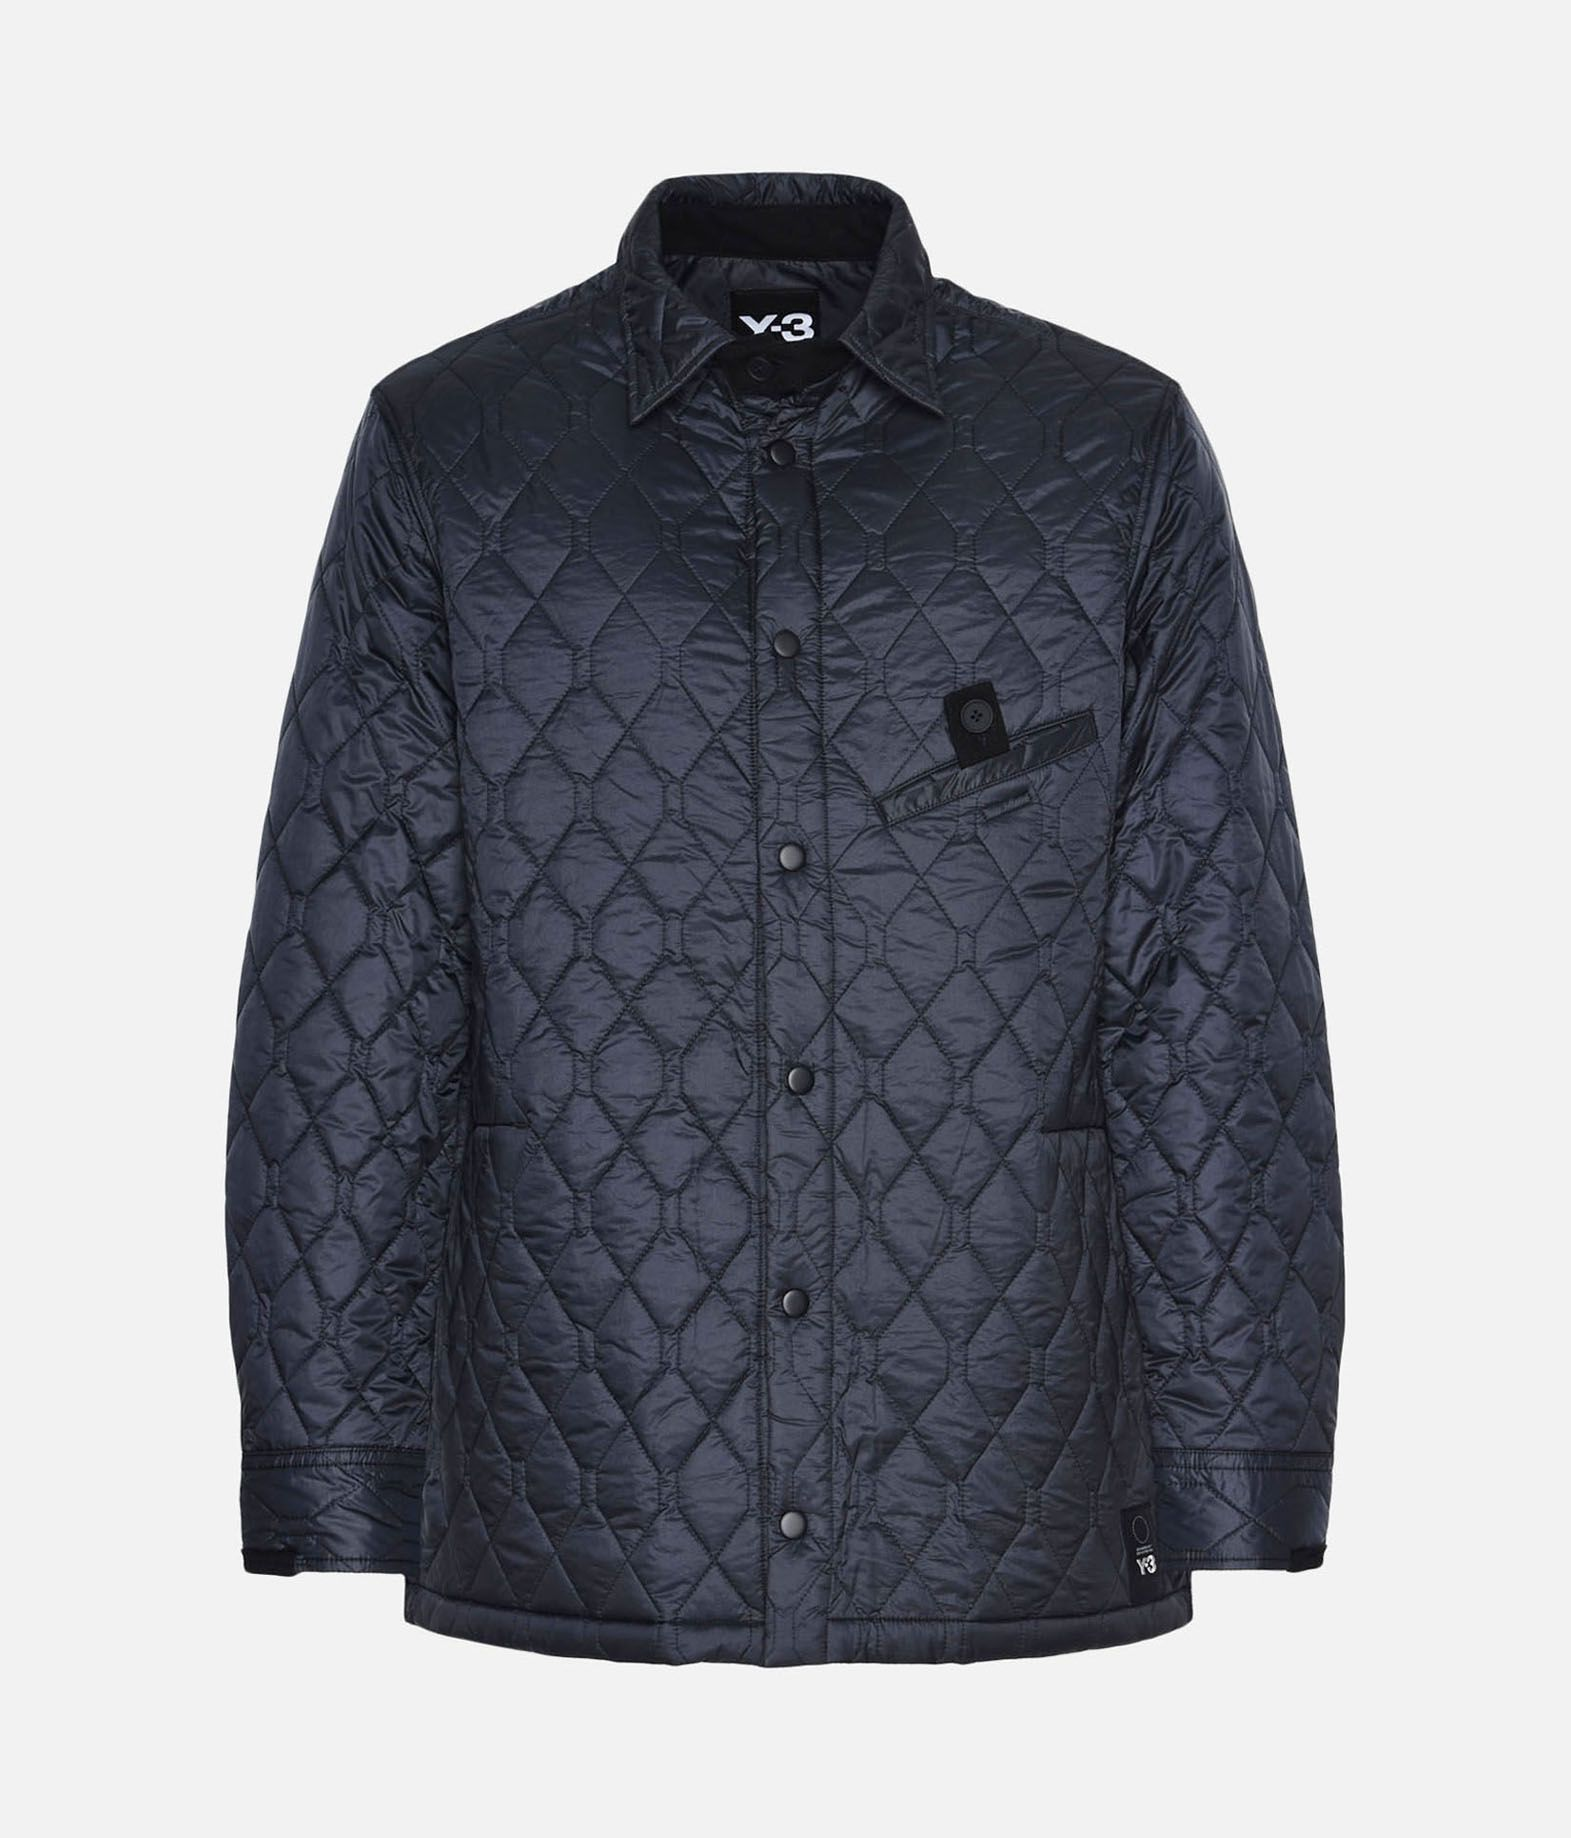 Y-3 Y-3 Quilted Shirt Long sleeve shirt Man f